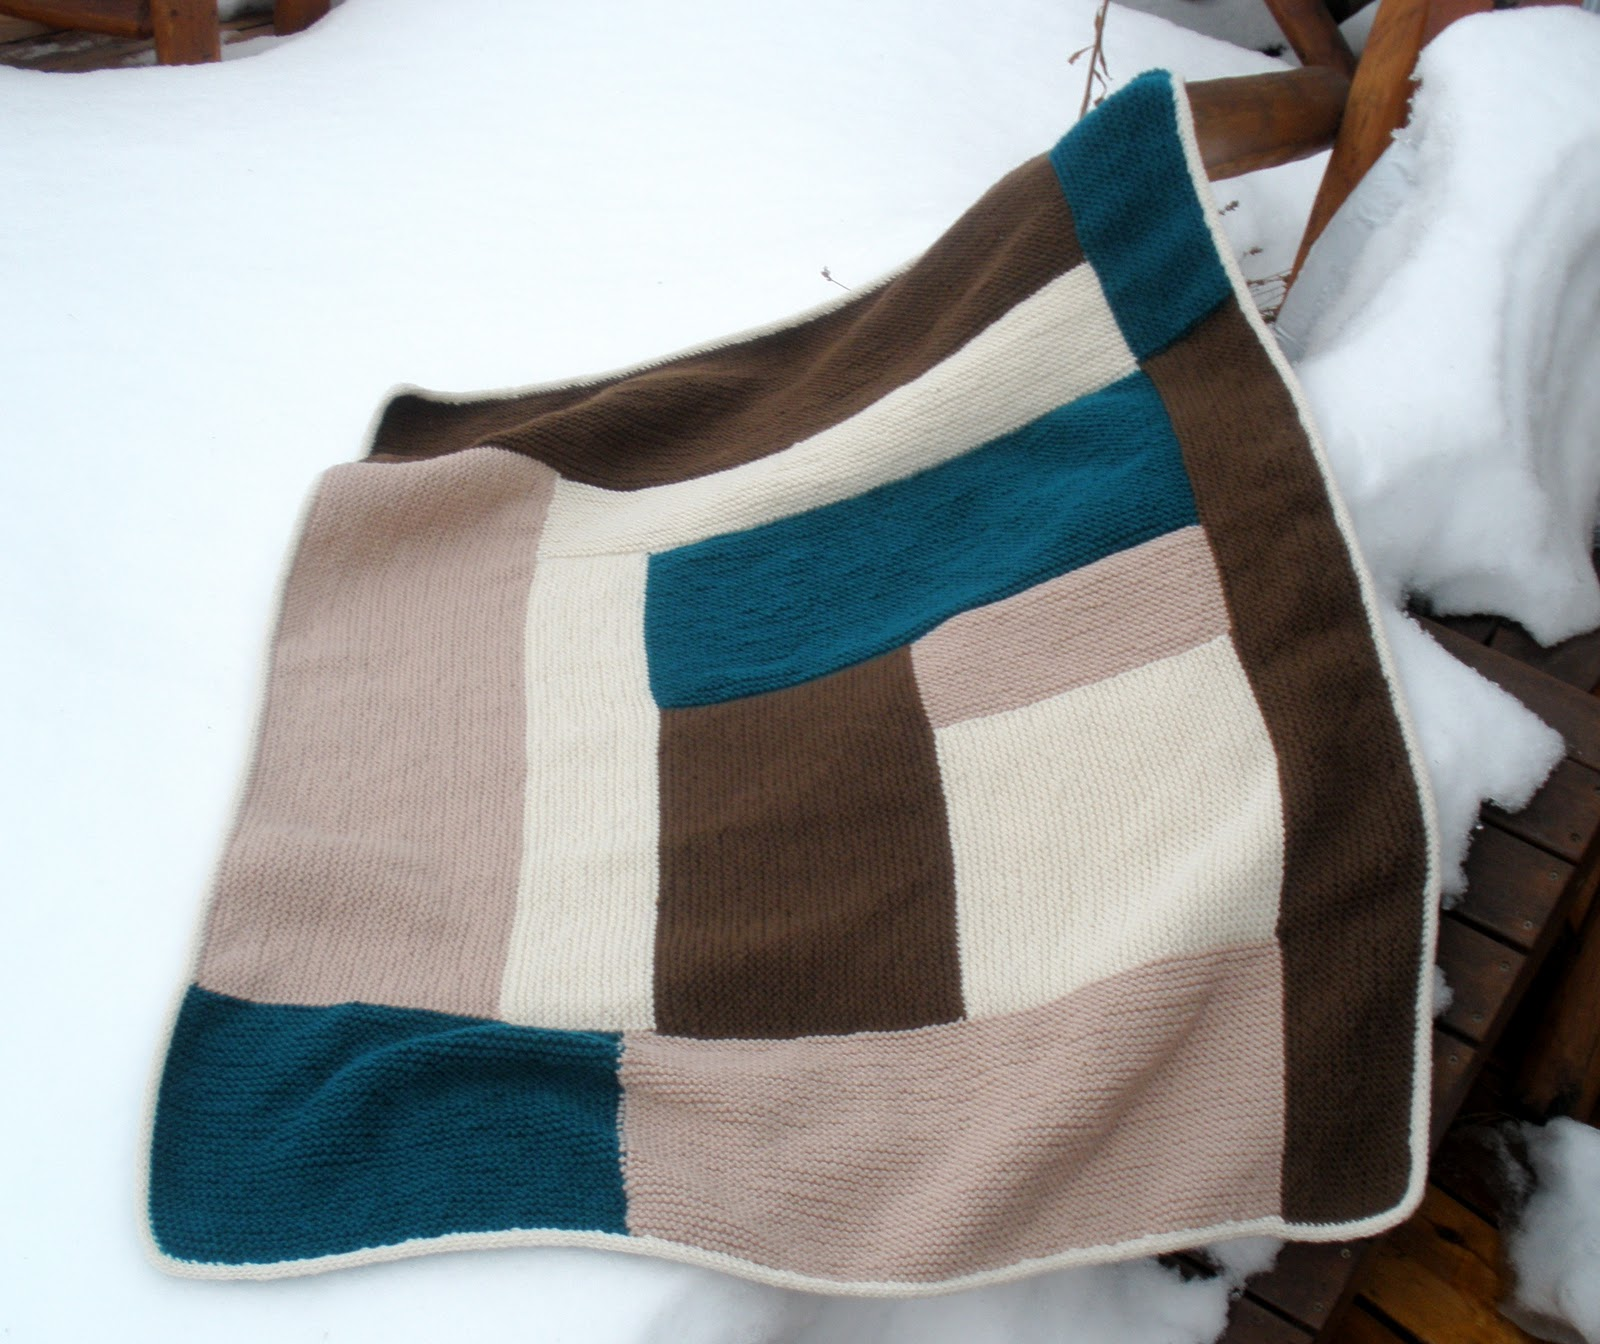 Knitting Blankets For Charity : Emptyknitster s never ending knitting charity blanket